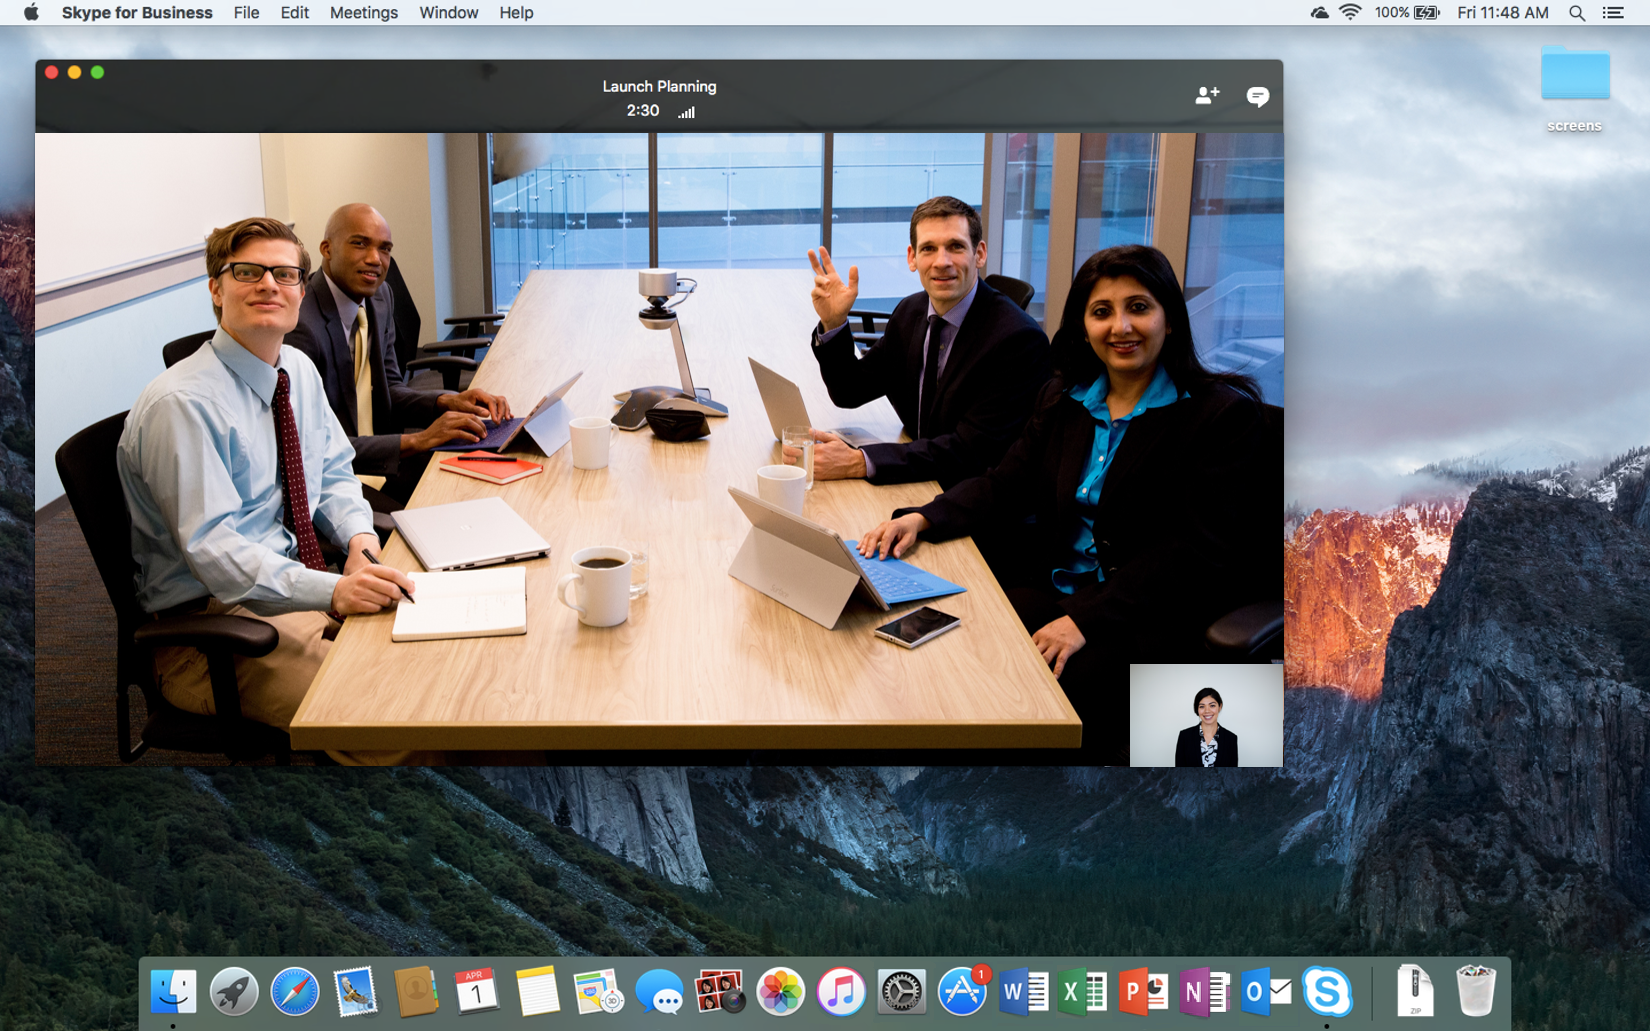 New opportunity for Mac Users, Skype Presented For Business Preview